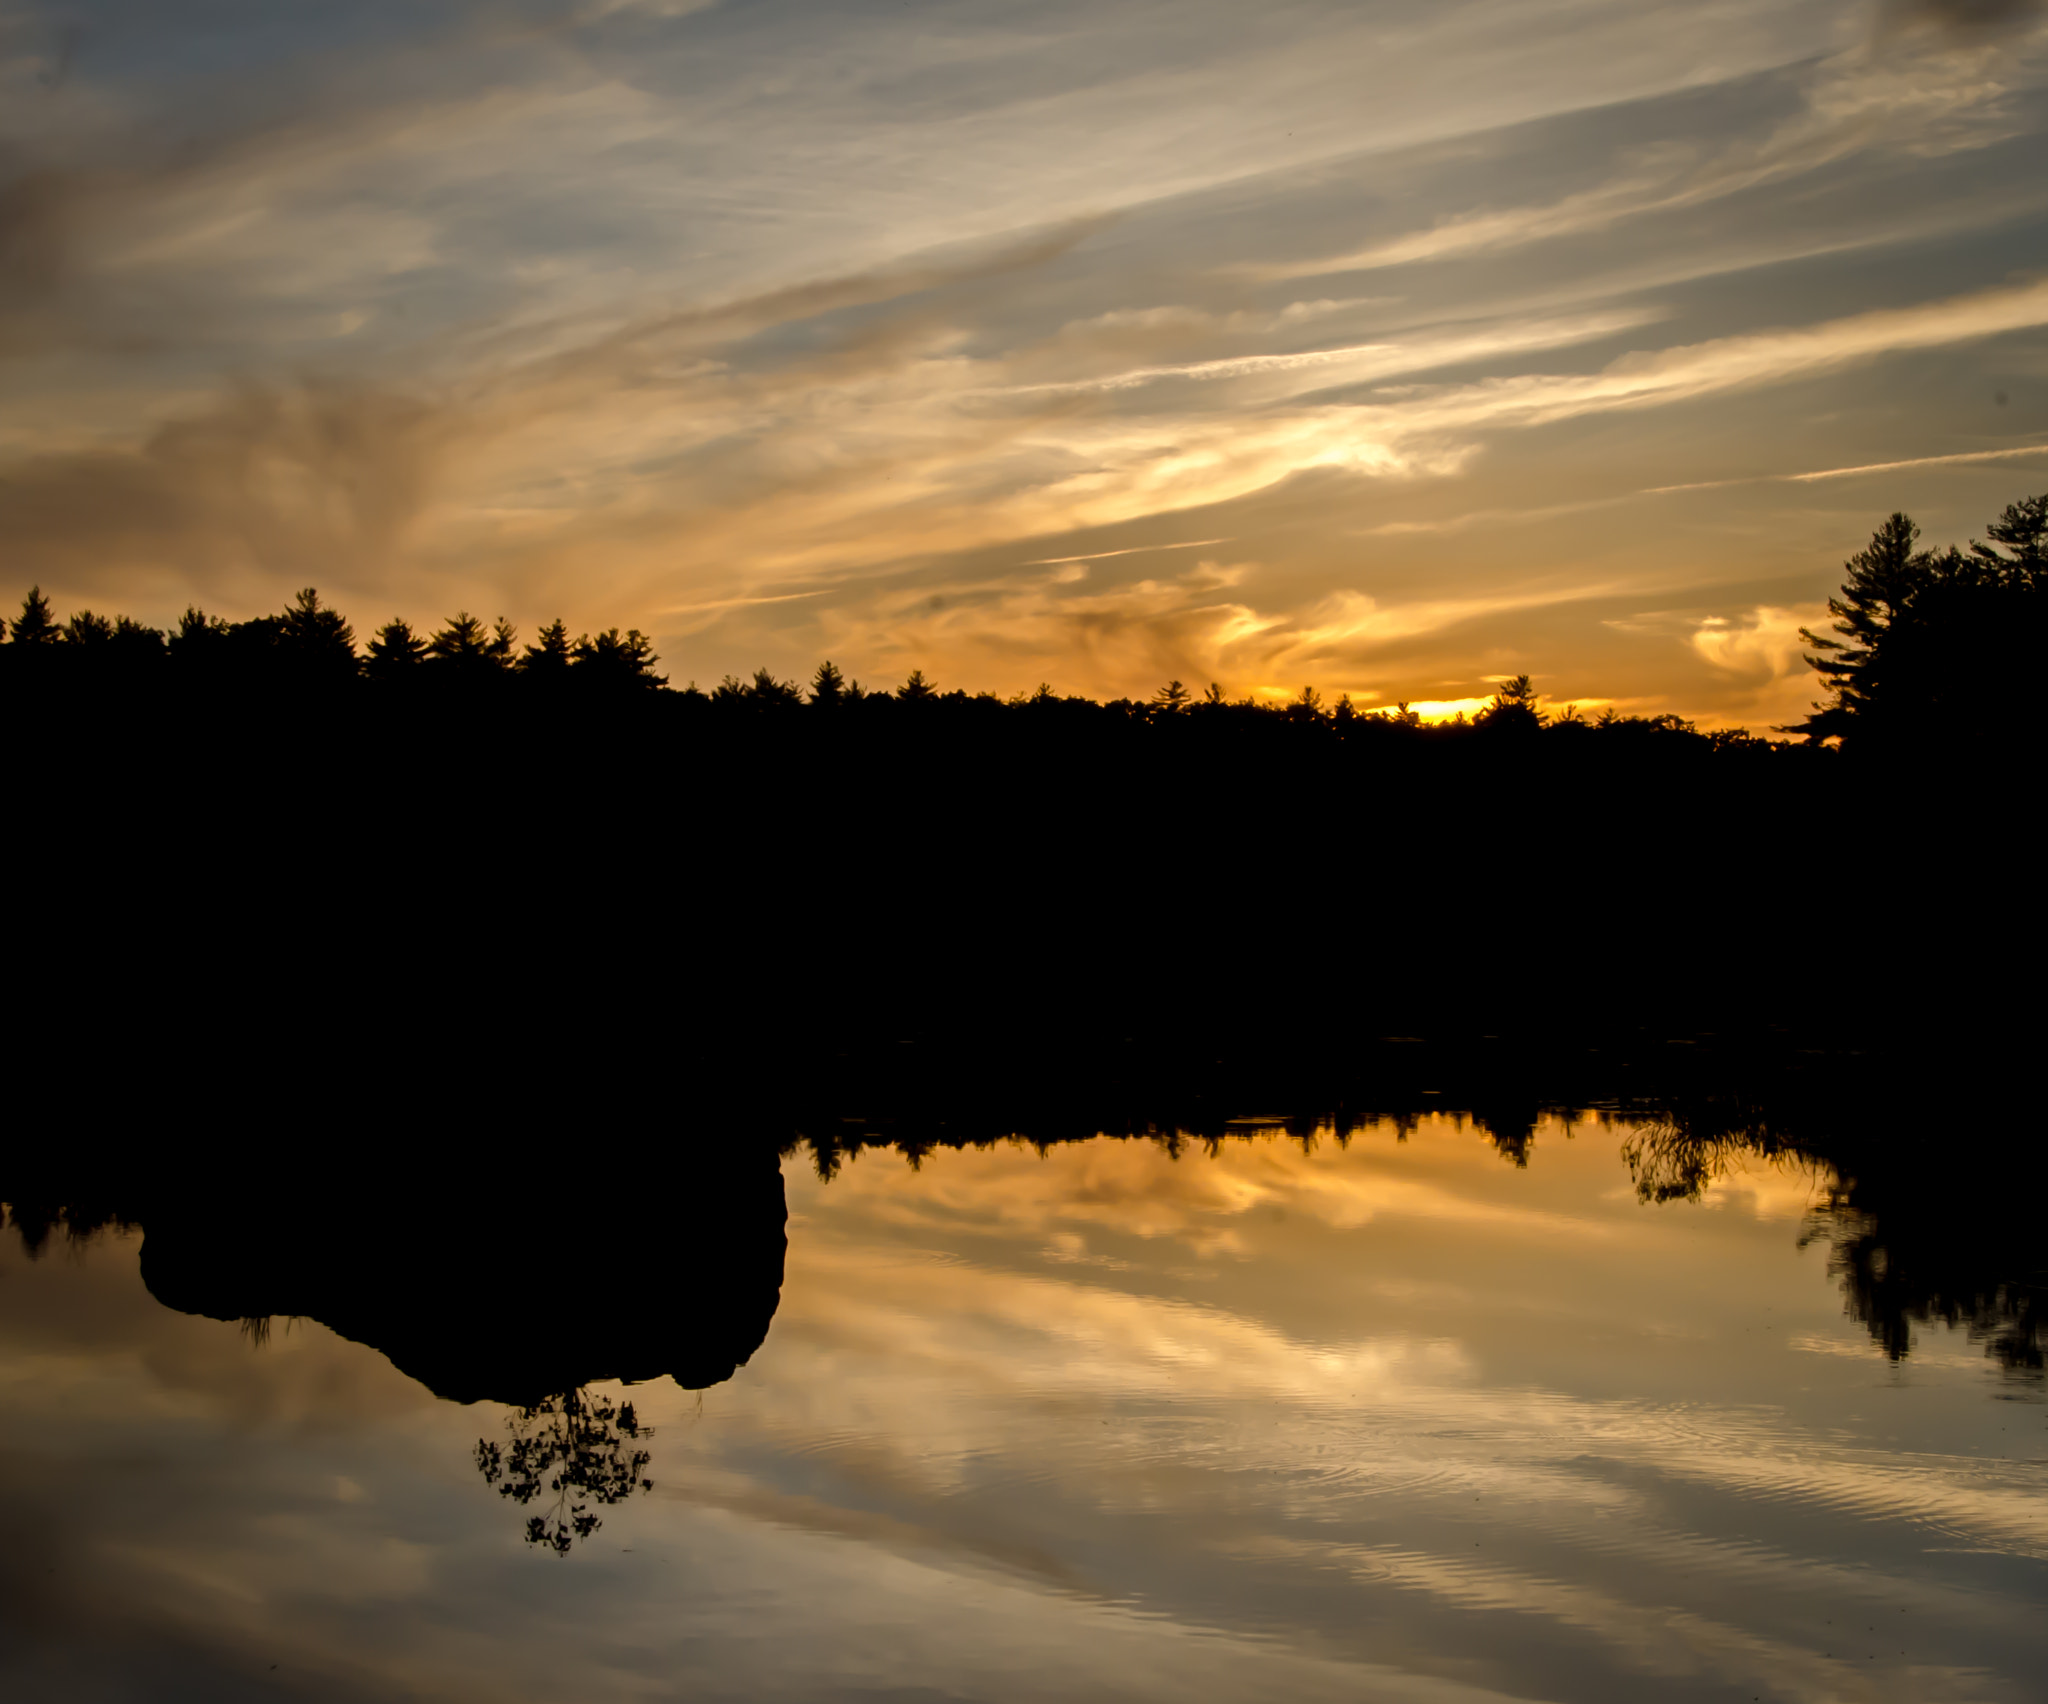 Photograph sunset 1 by LaDonna Pride on 500px